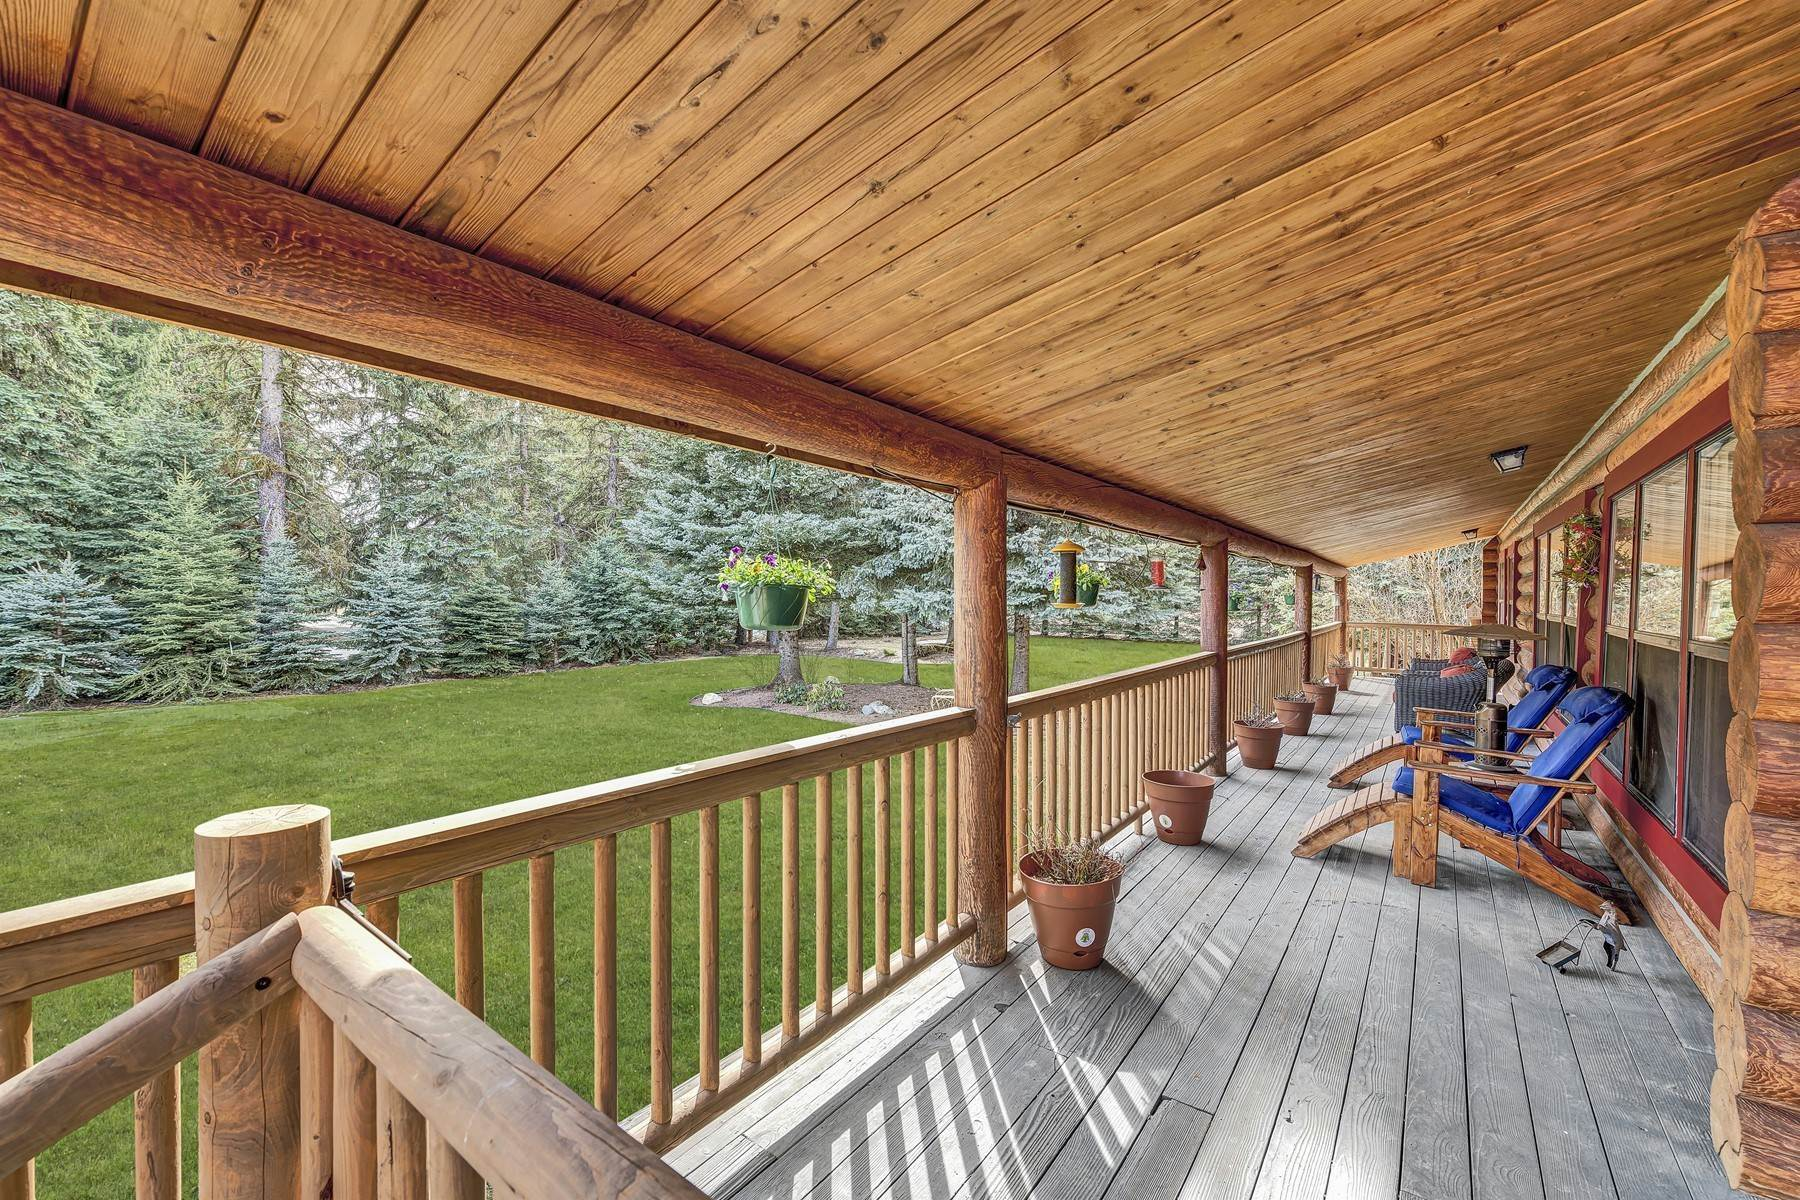 Single Family Homes for Sale at Beautiful Log Home in the Valley 3409 N Selle Rd Sandpoint, Idaho 83864